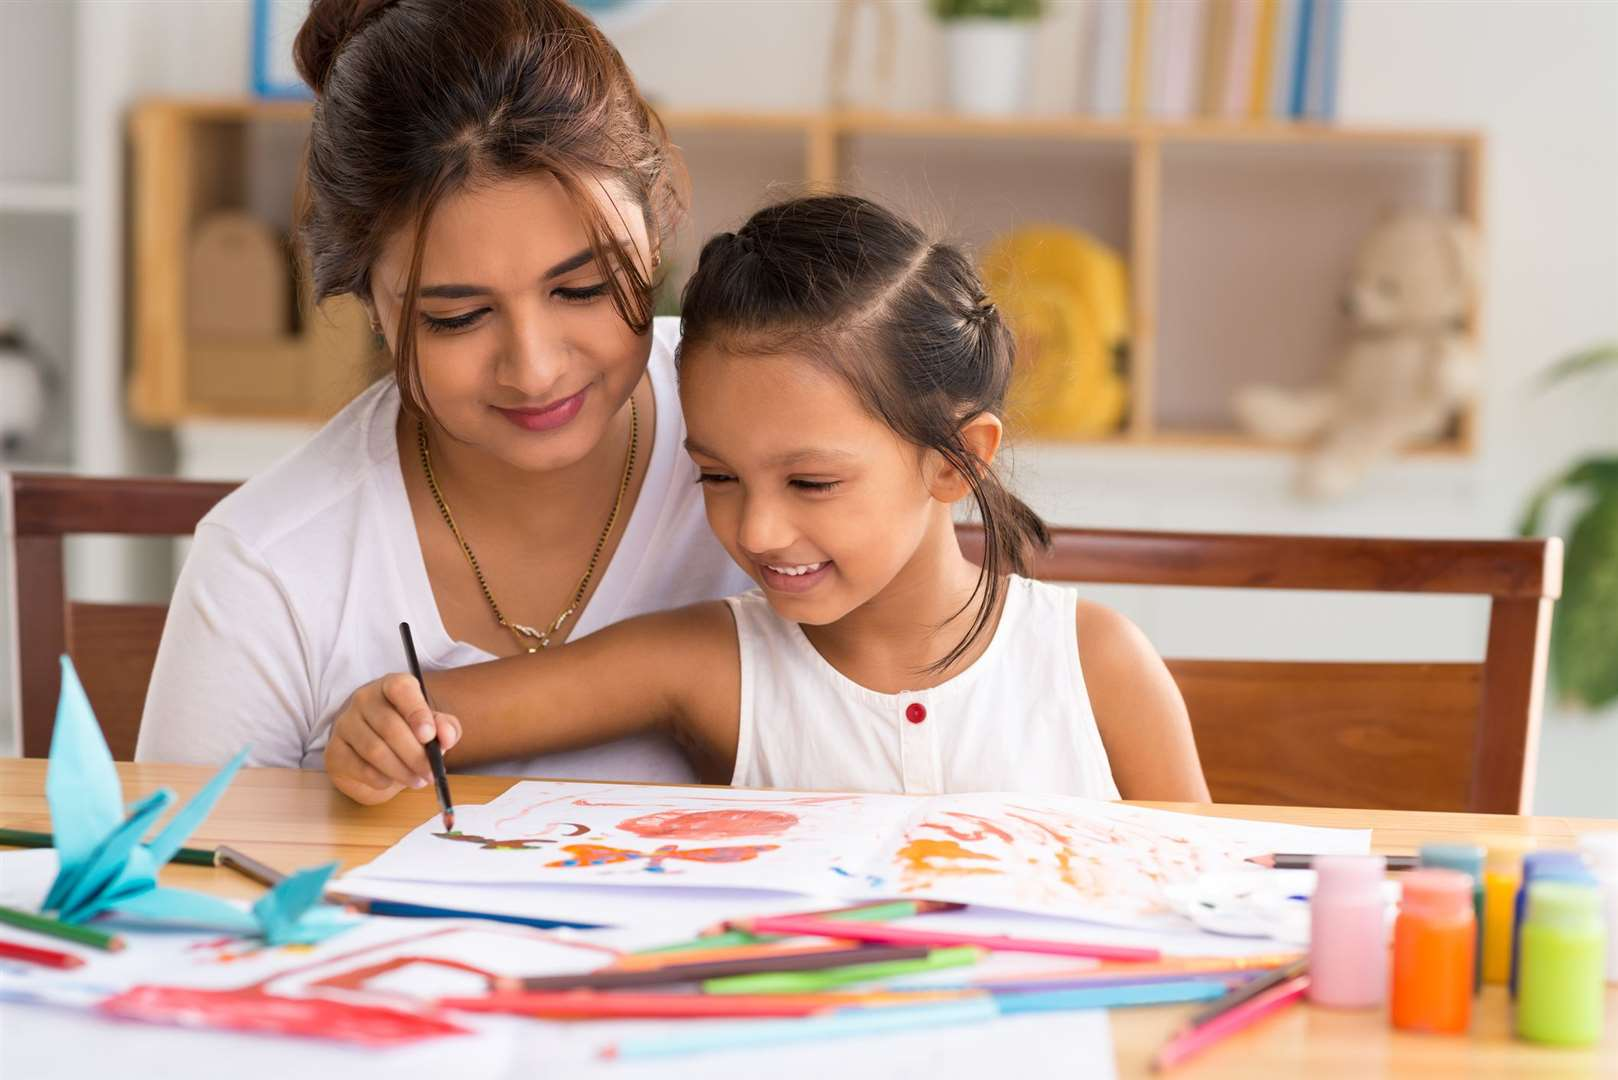 Painting with your child can help them to express their emotions and improve their wellbeing. Picture: iStock/PA